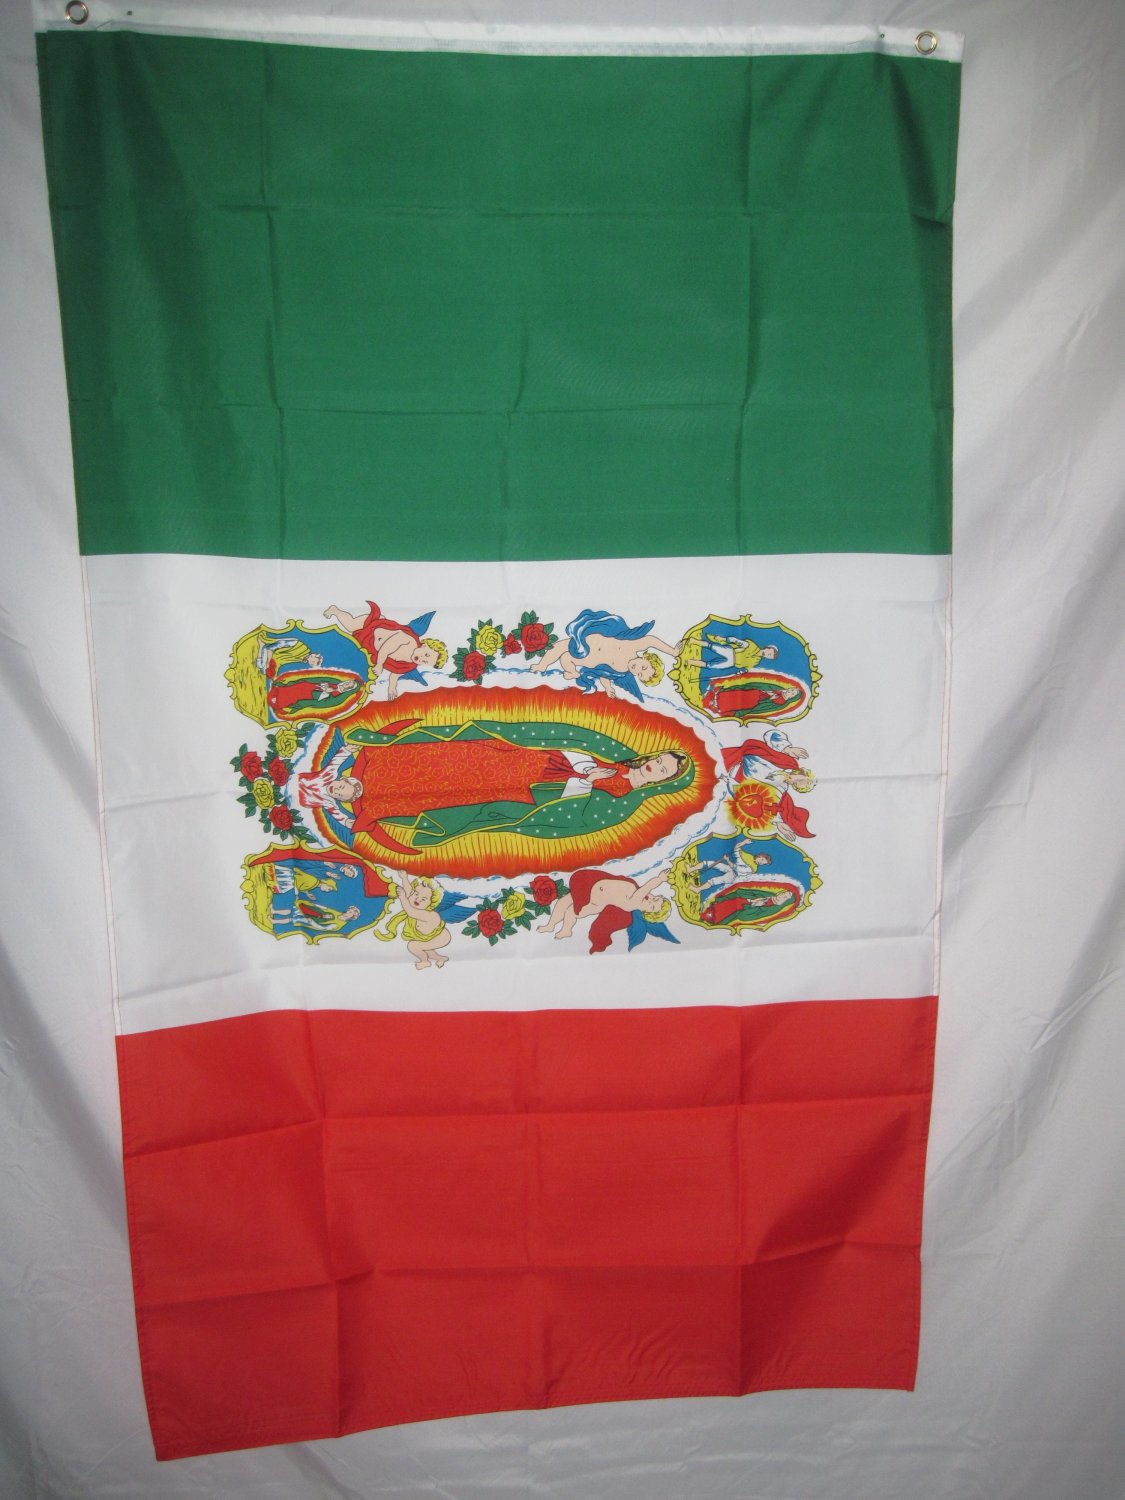 OUR LADY OF GUADALUPE FLAG MEXICO FLAG 3 X 5 3X5 NEW